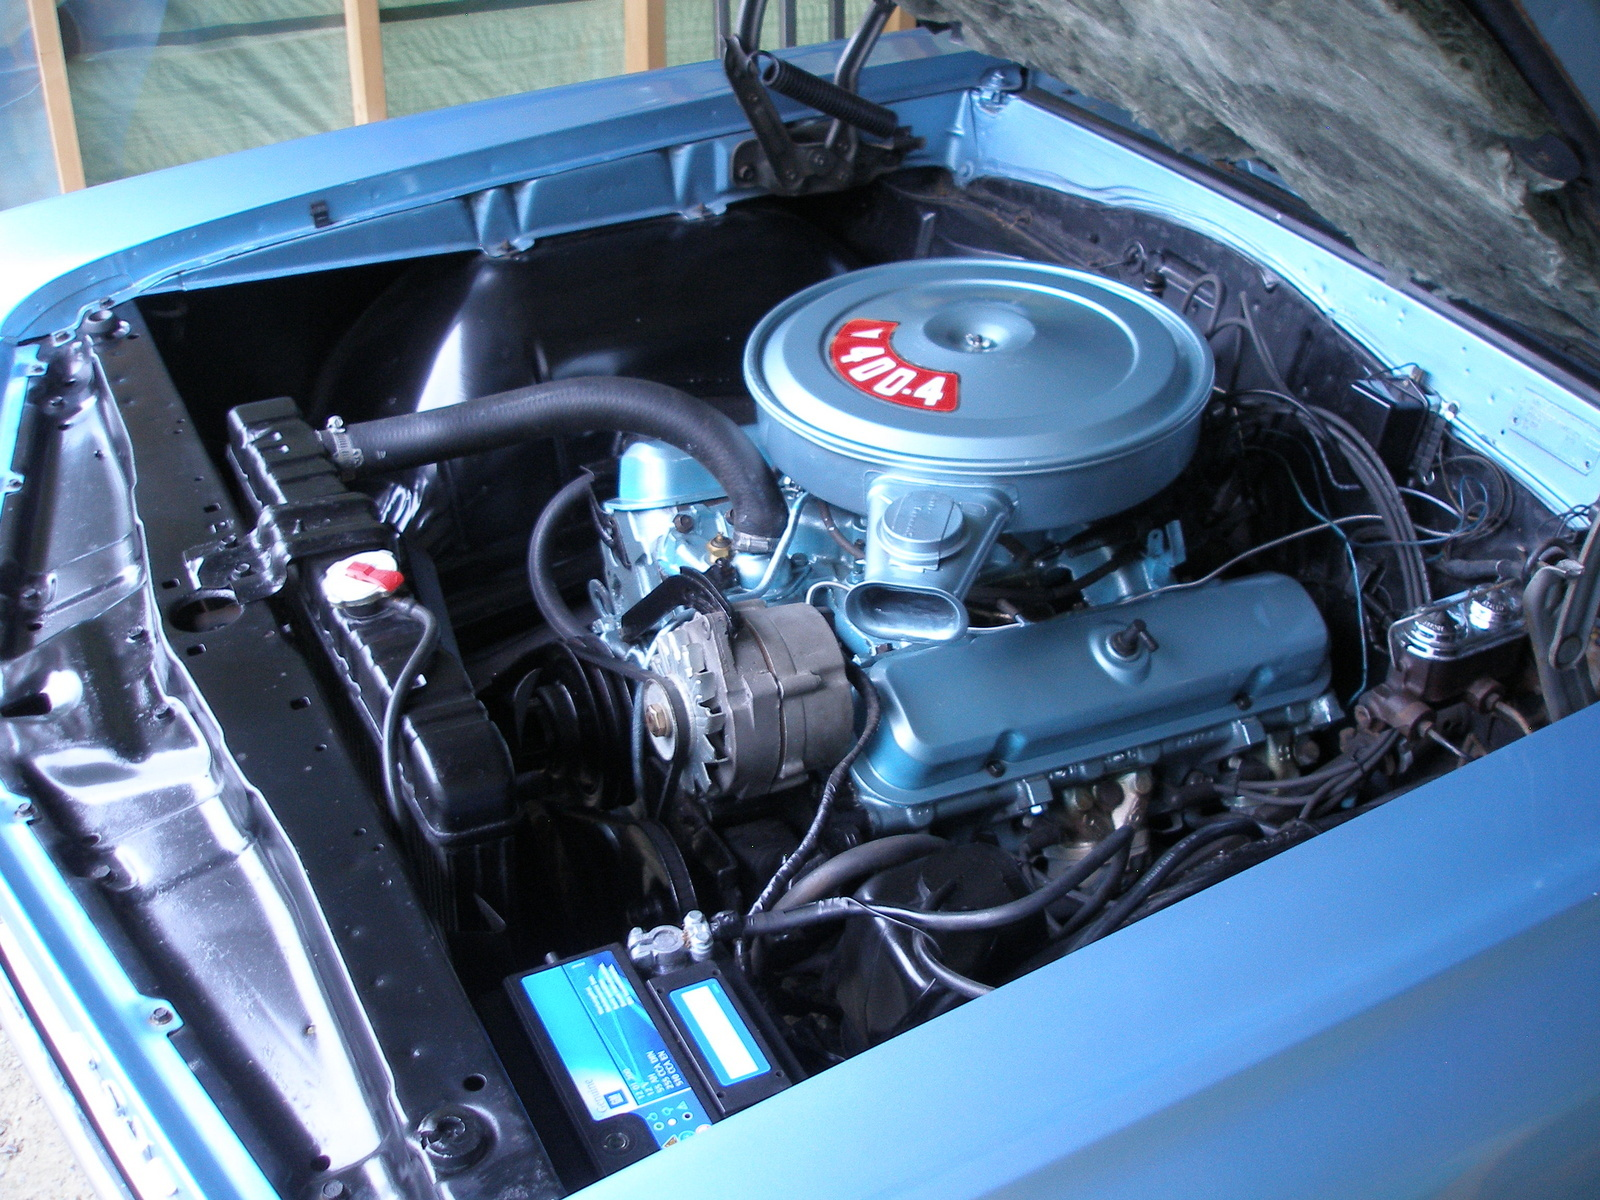 Pontiac Le Mans Questions To Rebuild Or Swap Cargurus 1964 Grand Prix Wiring Harness 9 Answers